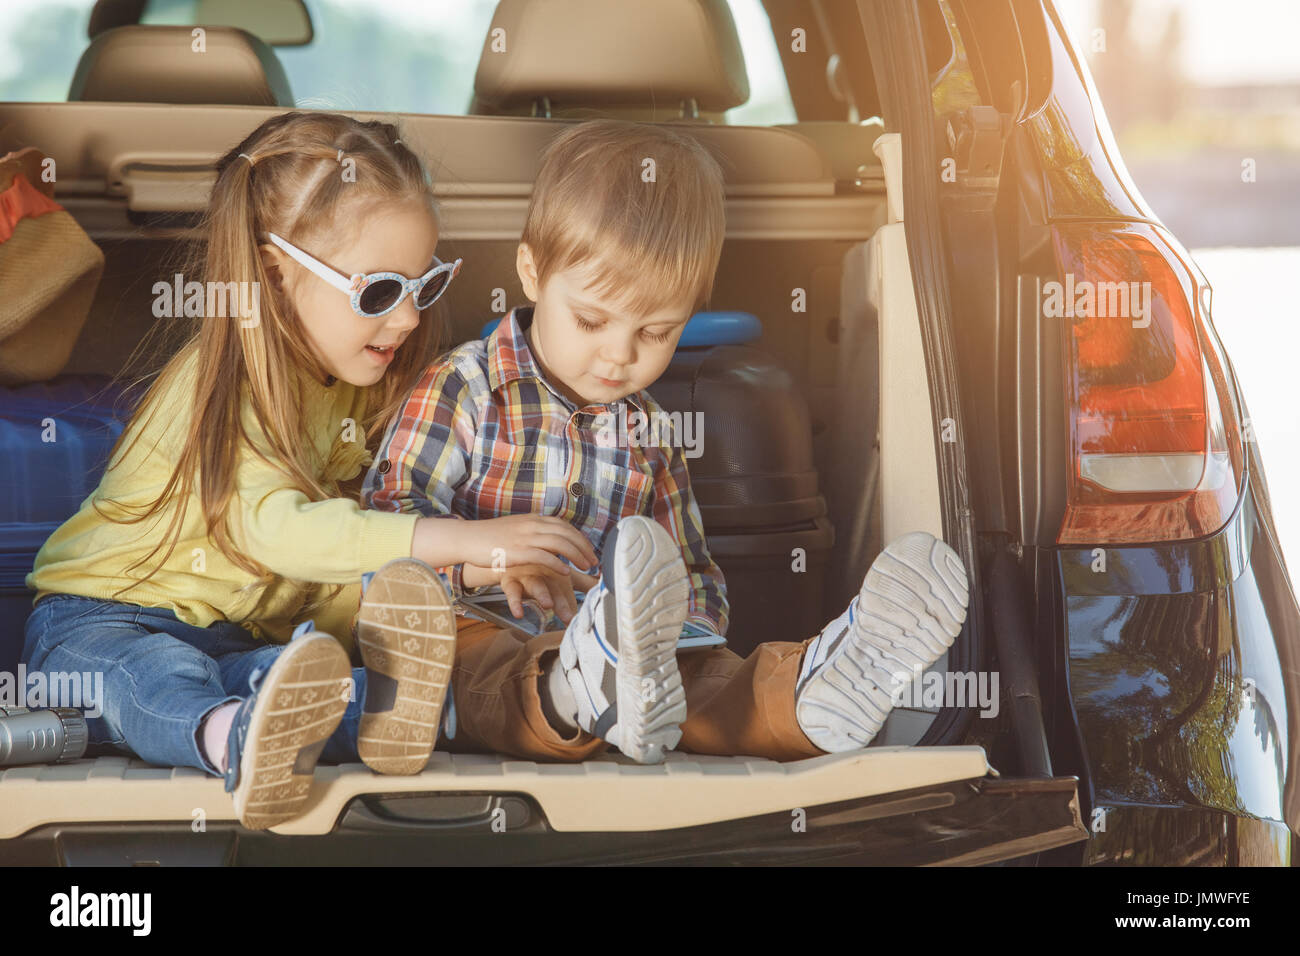 Travel by car family together brother and sister sitting in a trunk - Stock Image